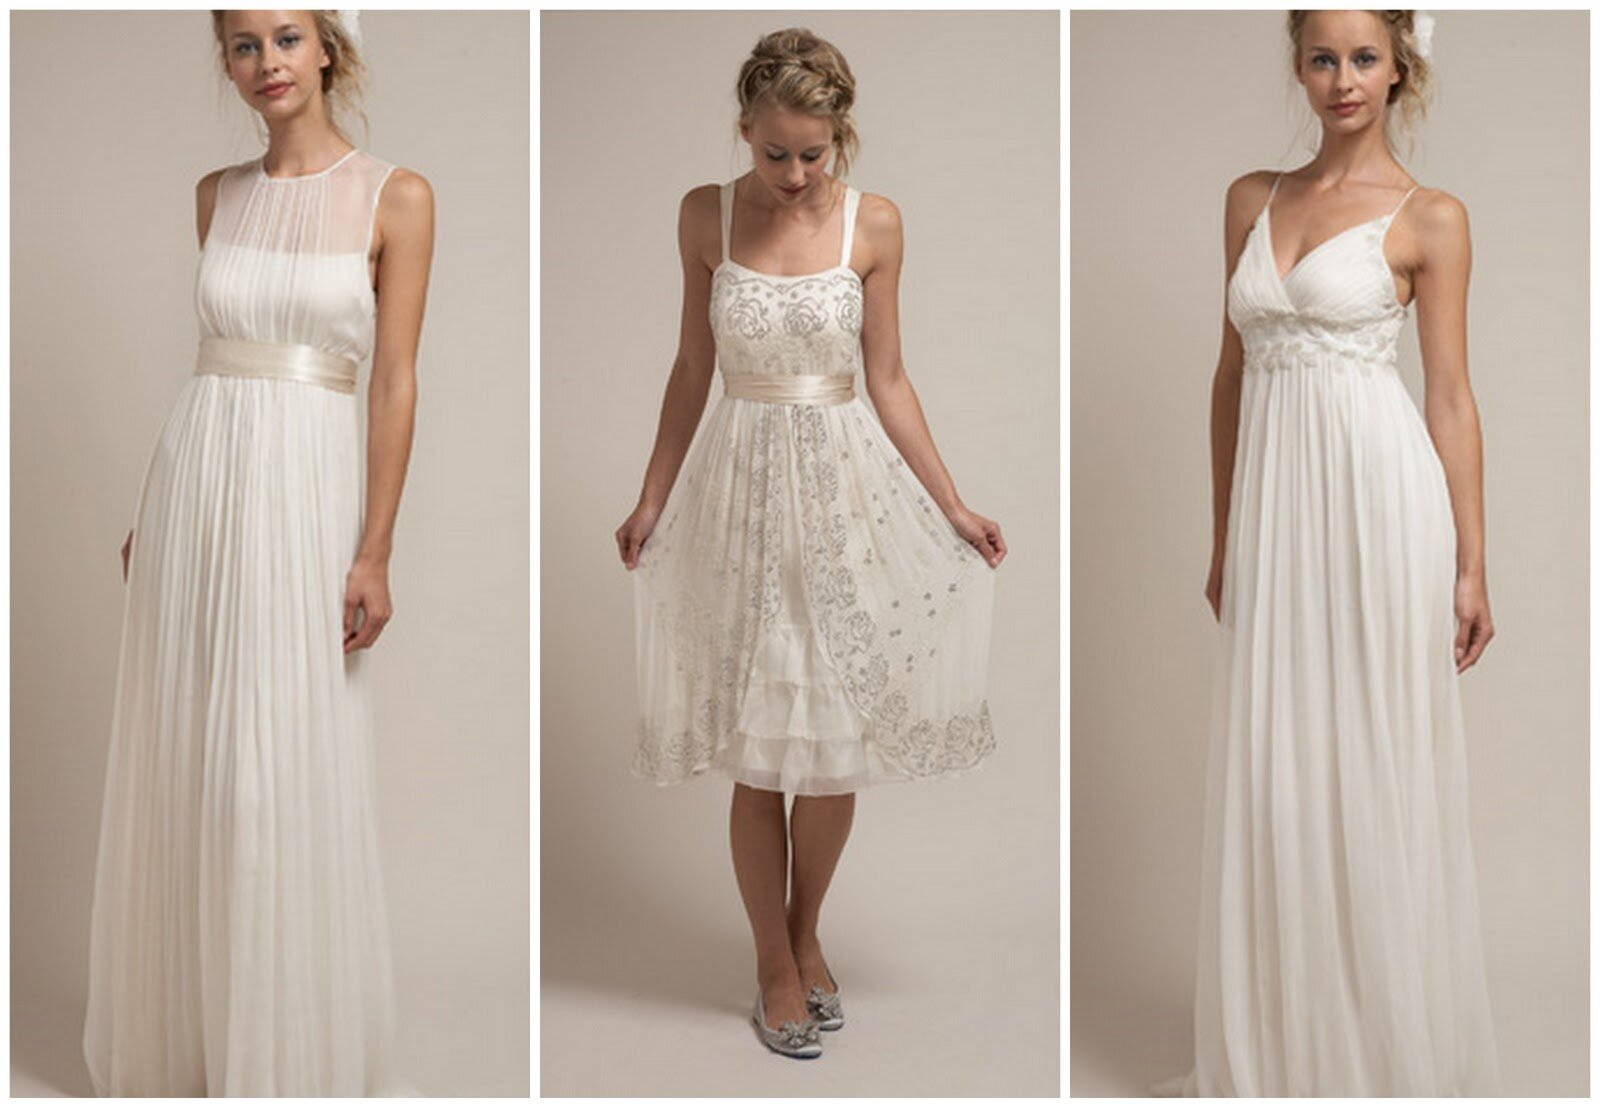 Where to buy wedding guest dress